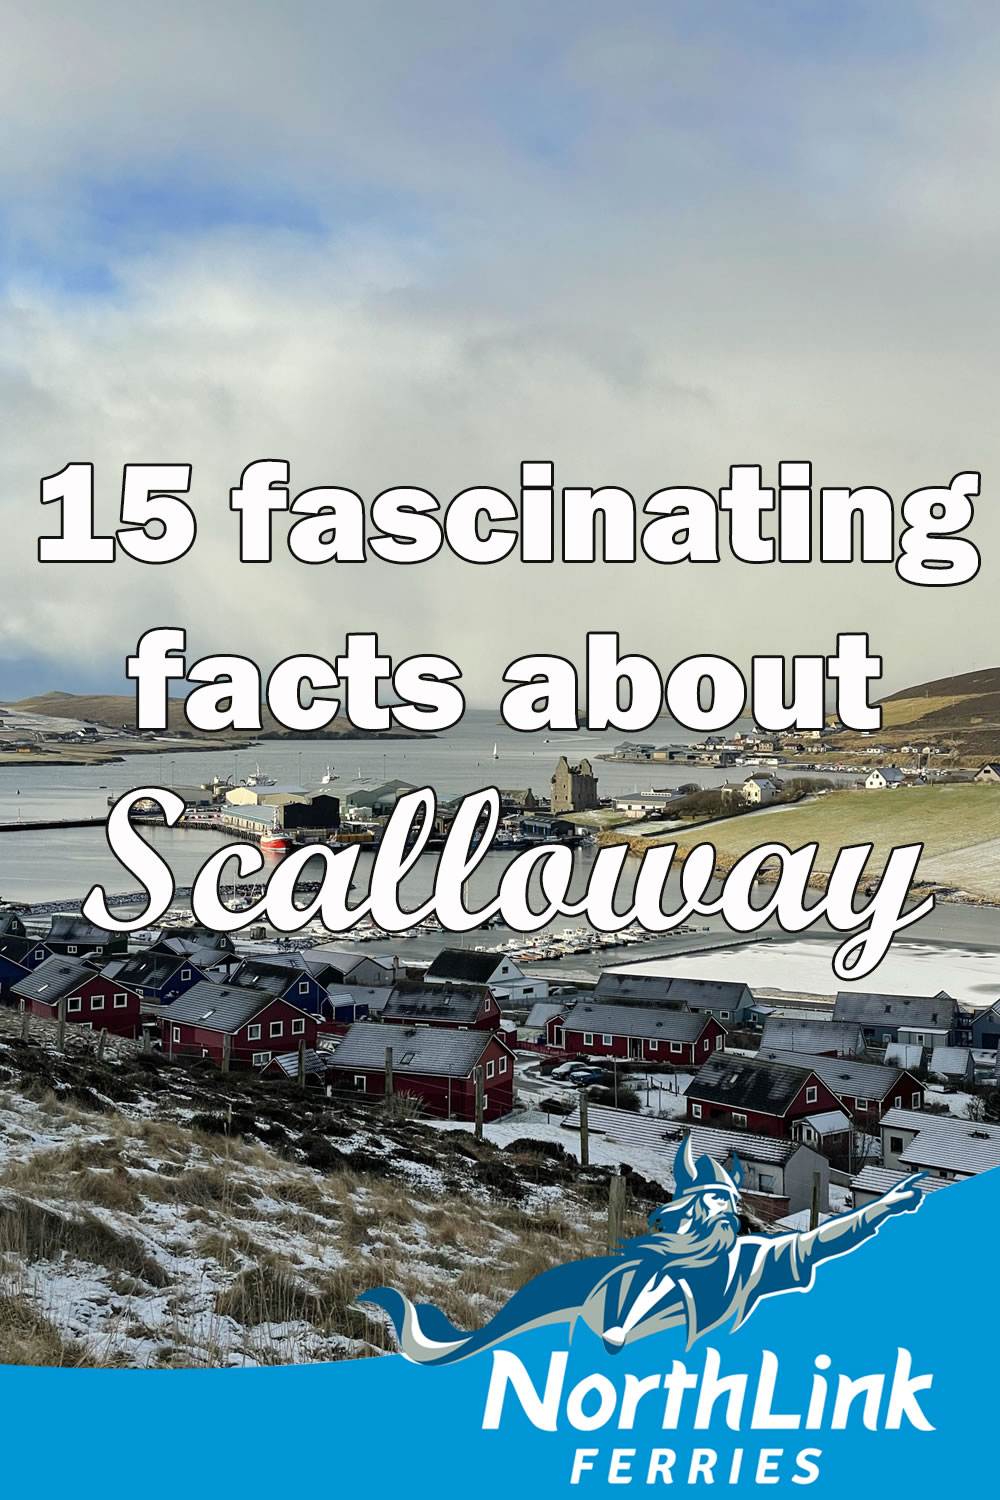 15 fascinating facts about Scalloway